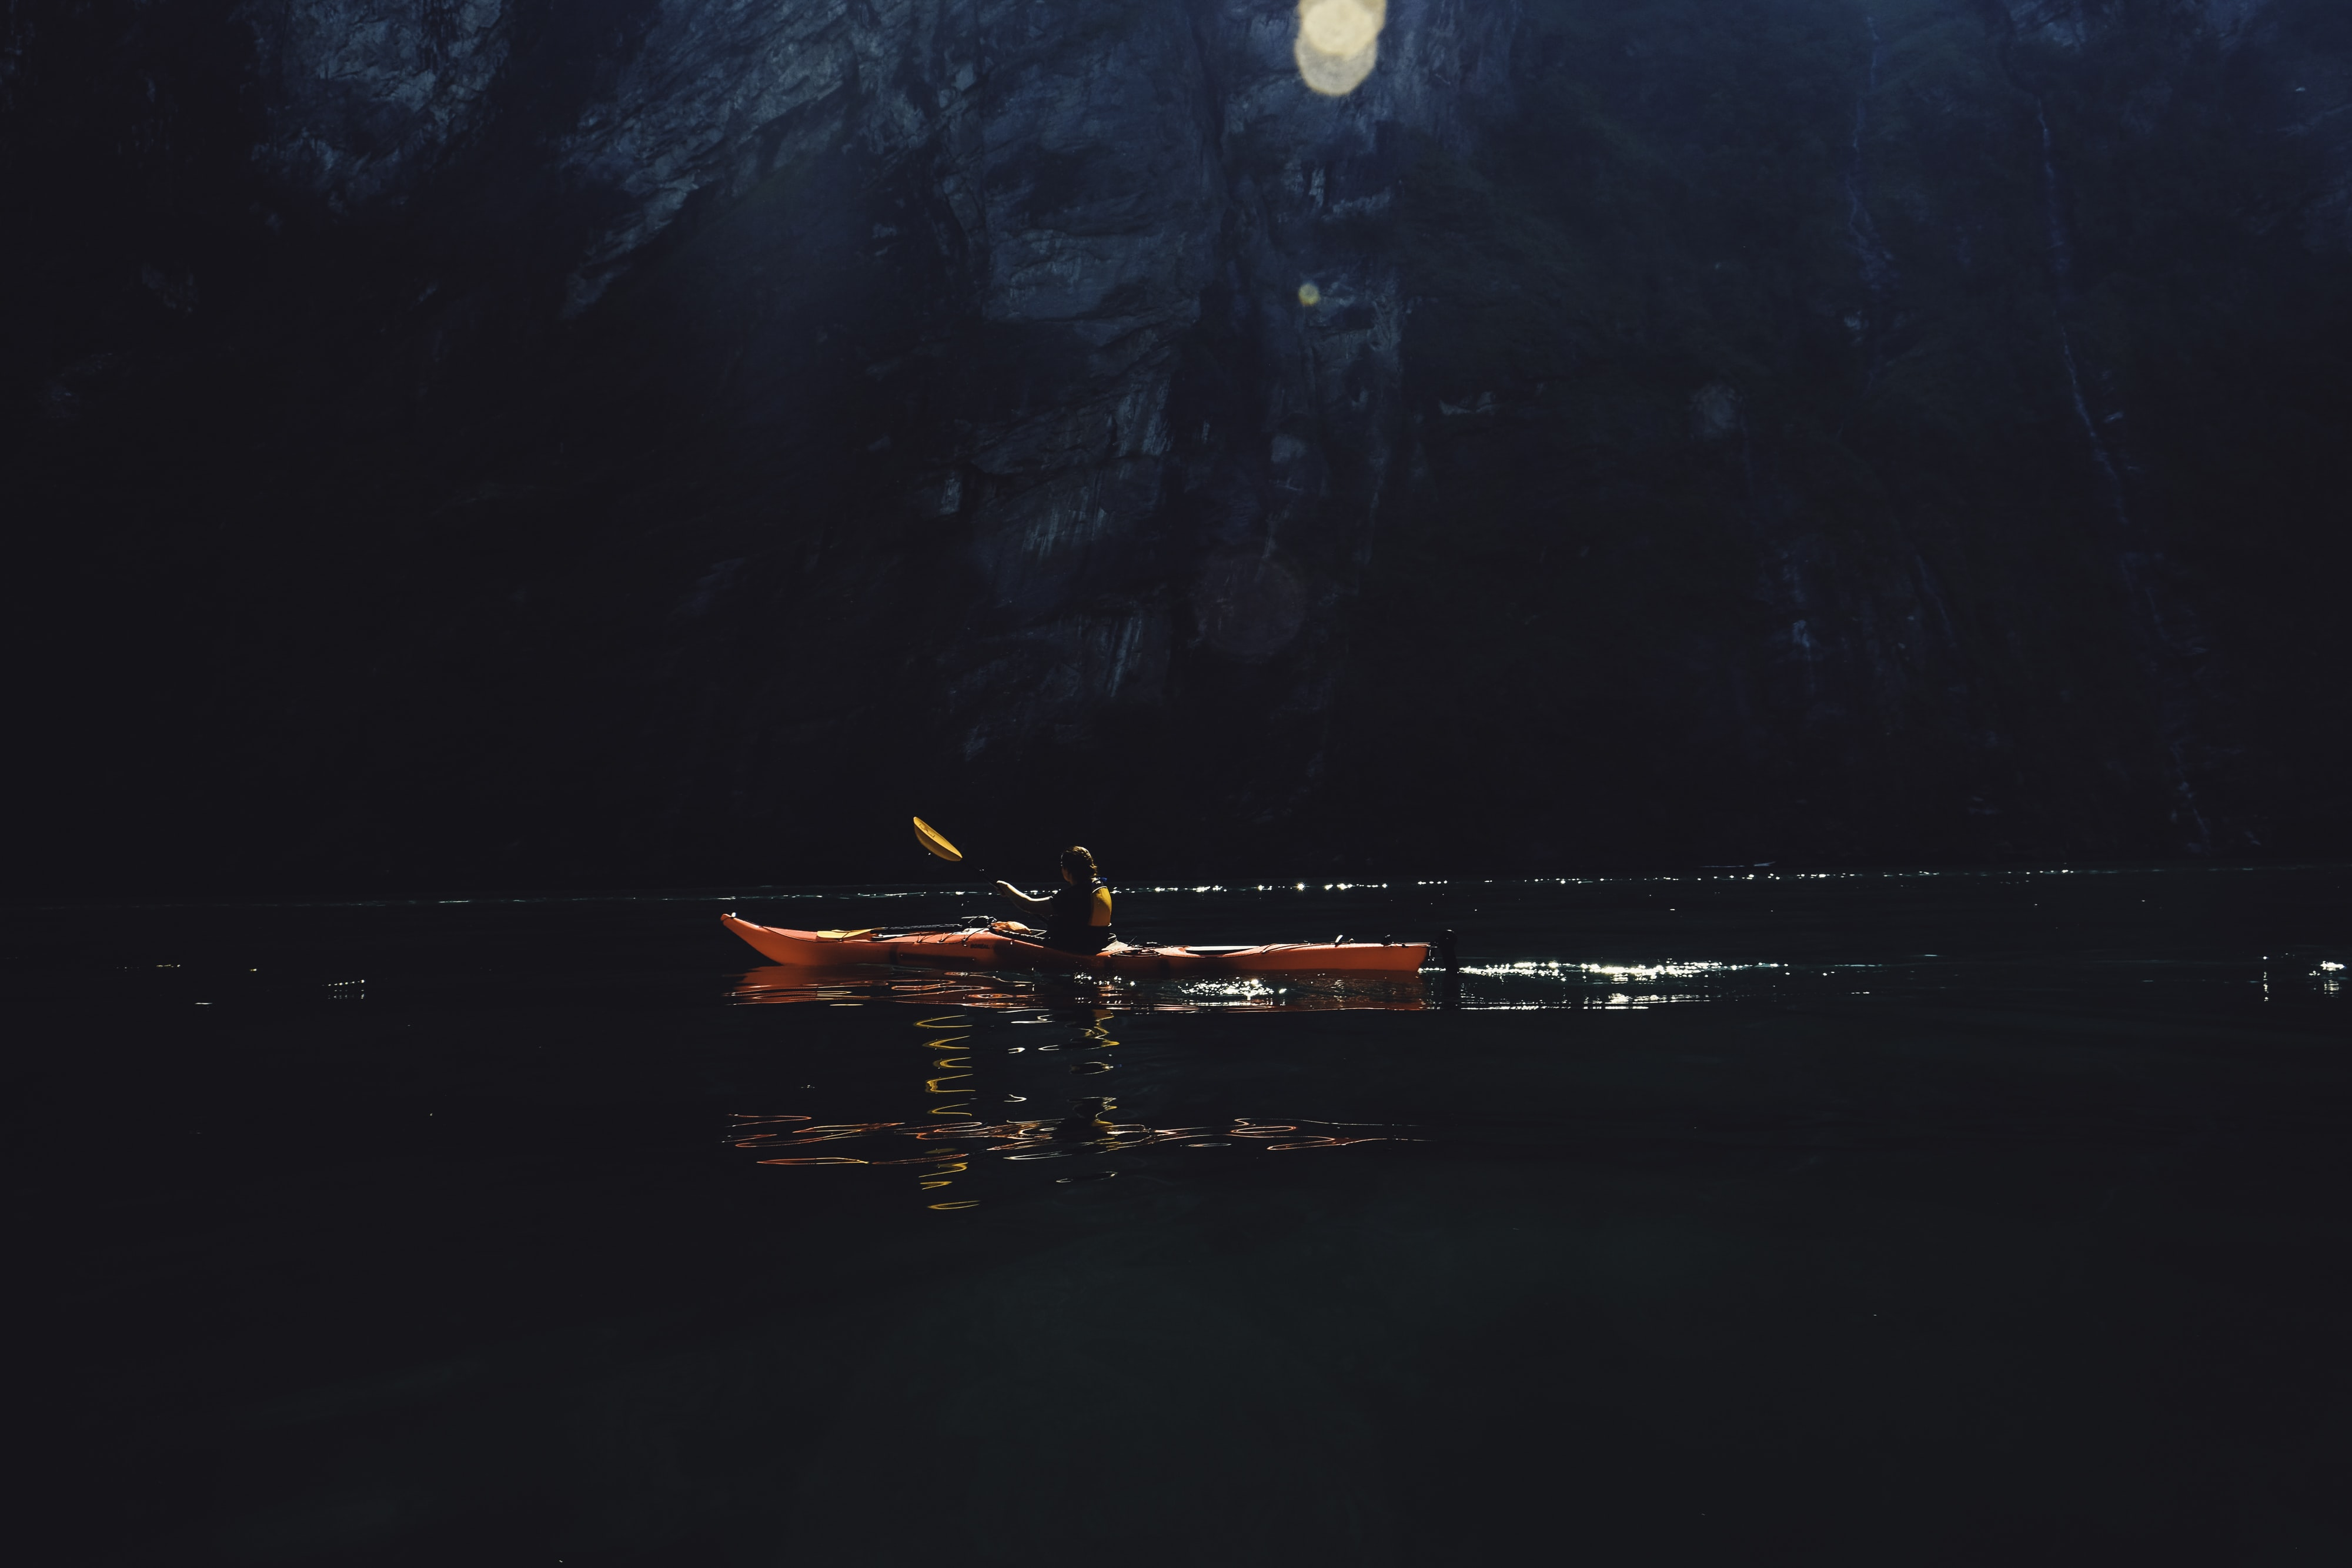 person riding on red kayak while paddling on body of water